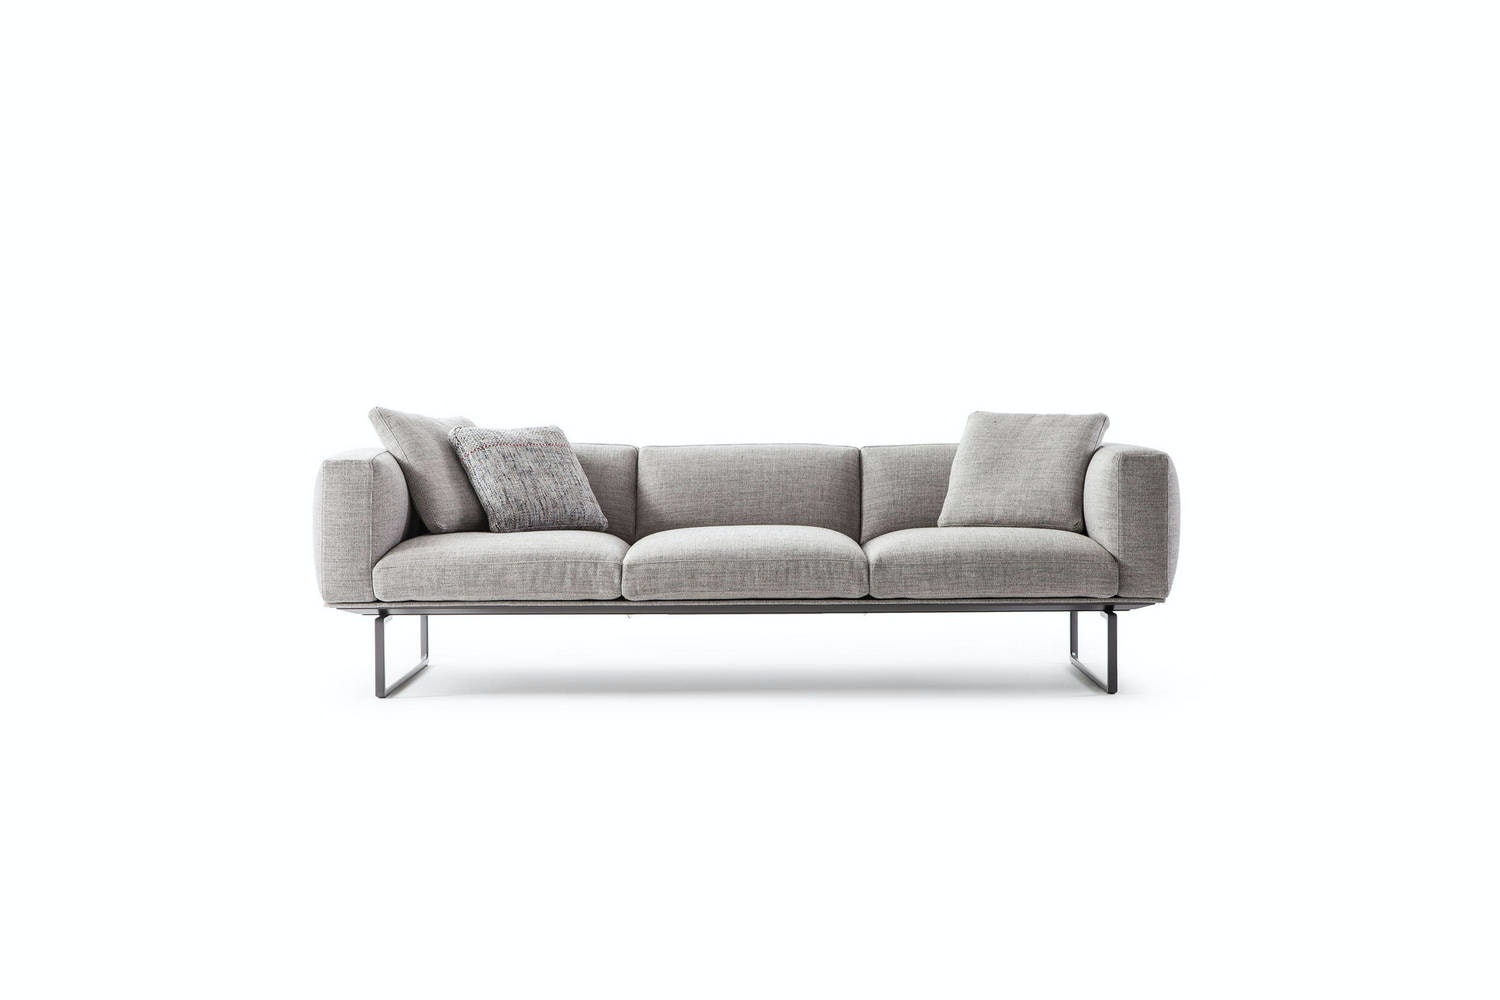 206 8 Cube Sofa by Piero Lissoni for Cassina